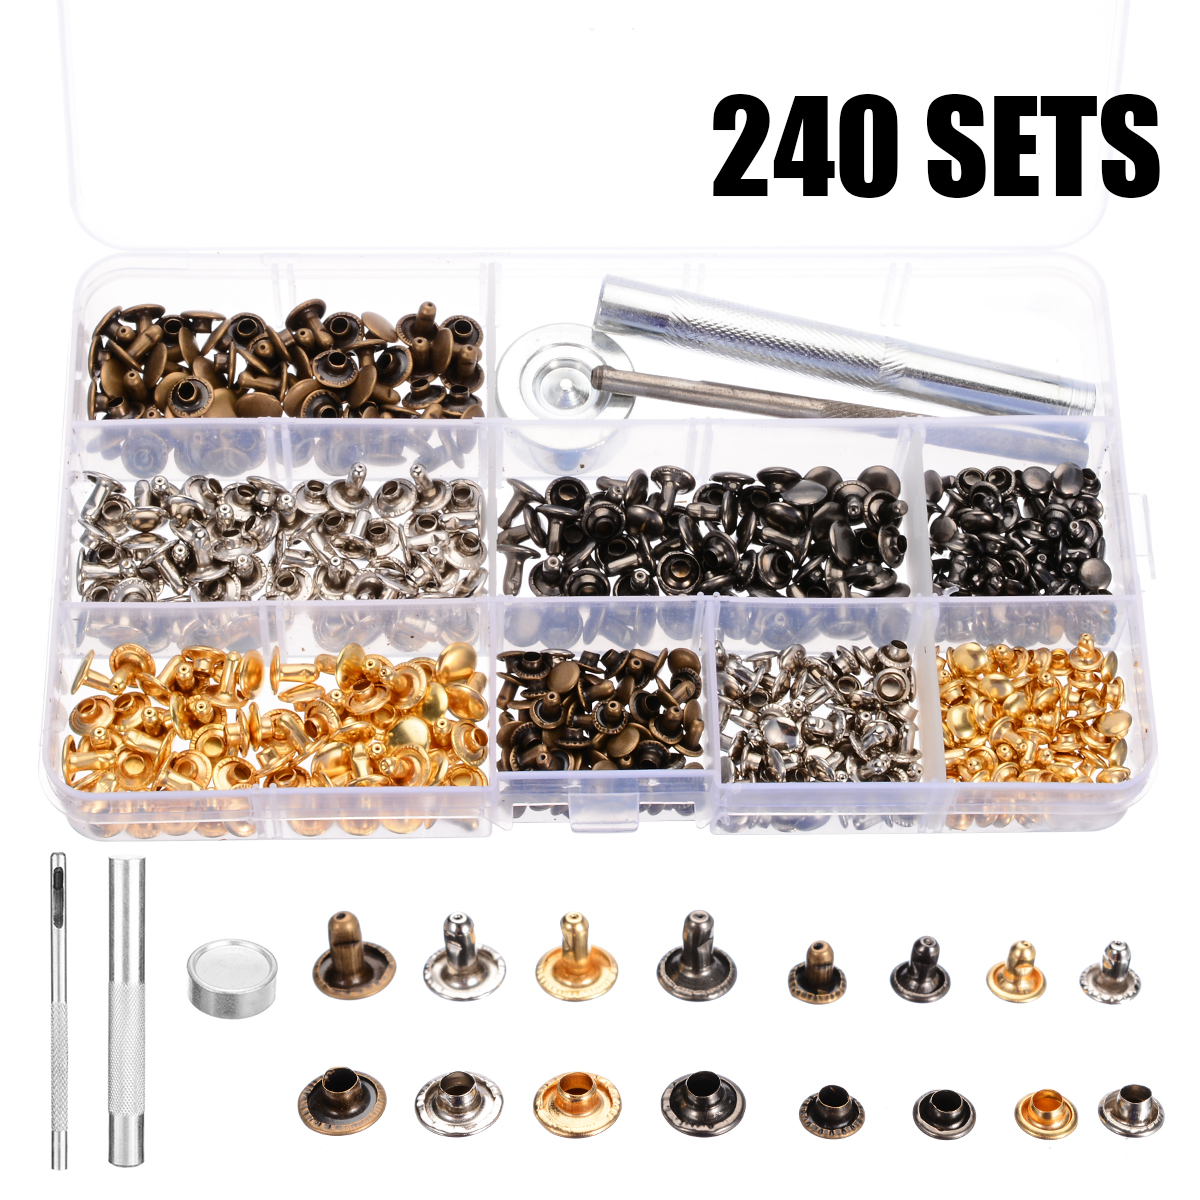 240 Sets Leather Craft Double Cap Repairing Rivets Tubular Snaps Fastener Button Press Metal Studs Fixing Tools Kit240 Sets Leather Craft Double Cap Repairing Rivets Tubular Snaps Fastener Button Press Metal Studs Fixing Tools Kit